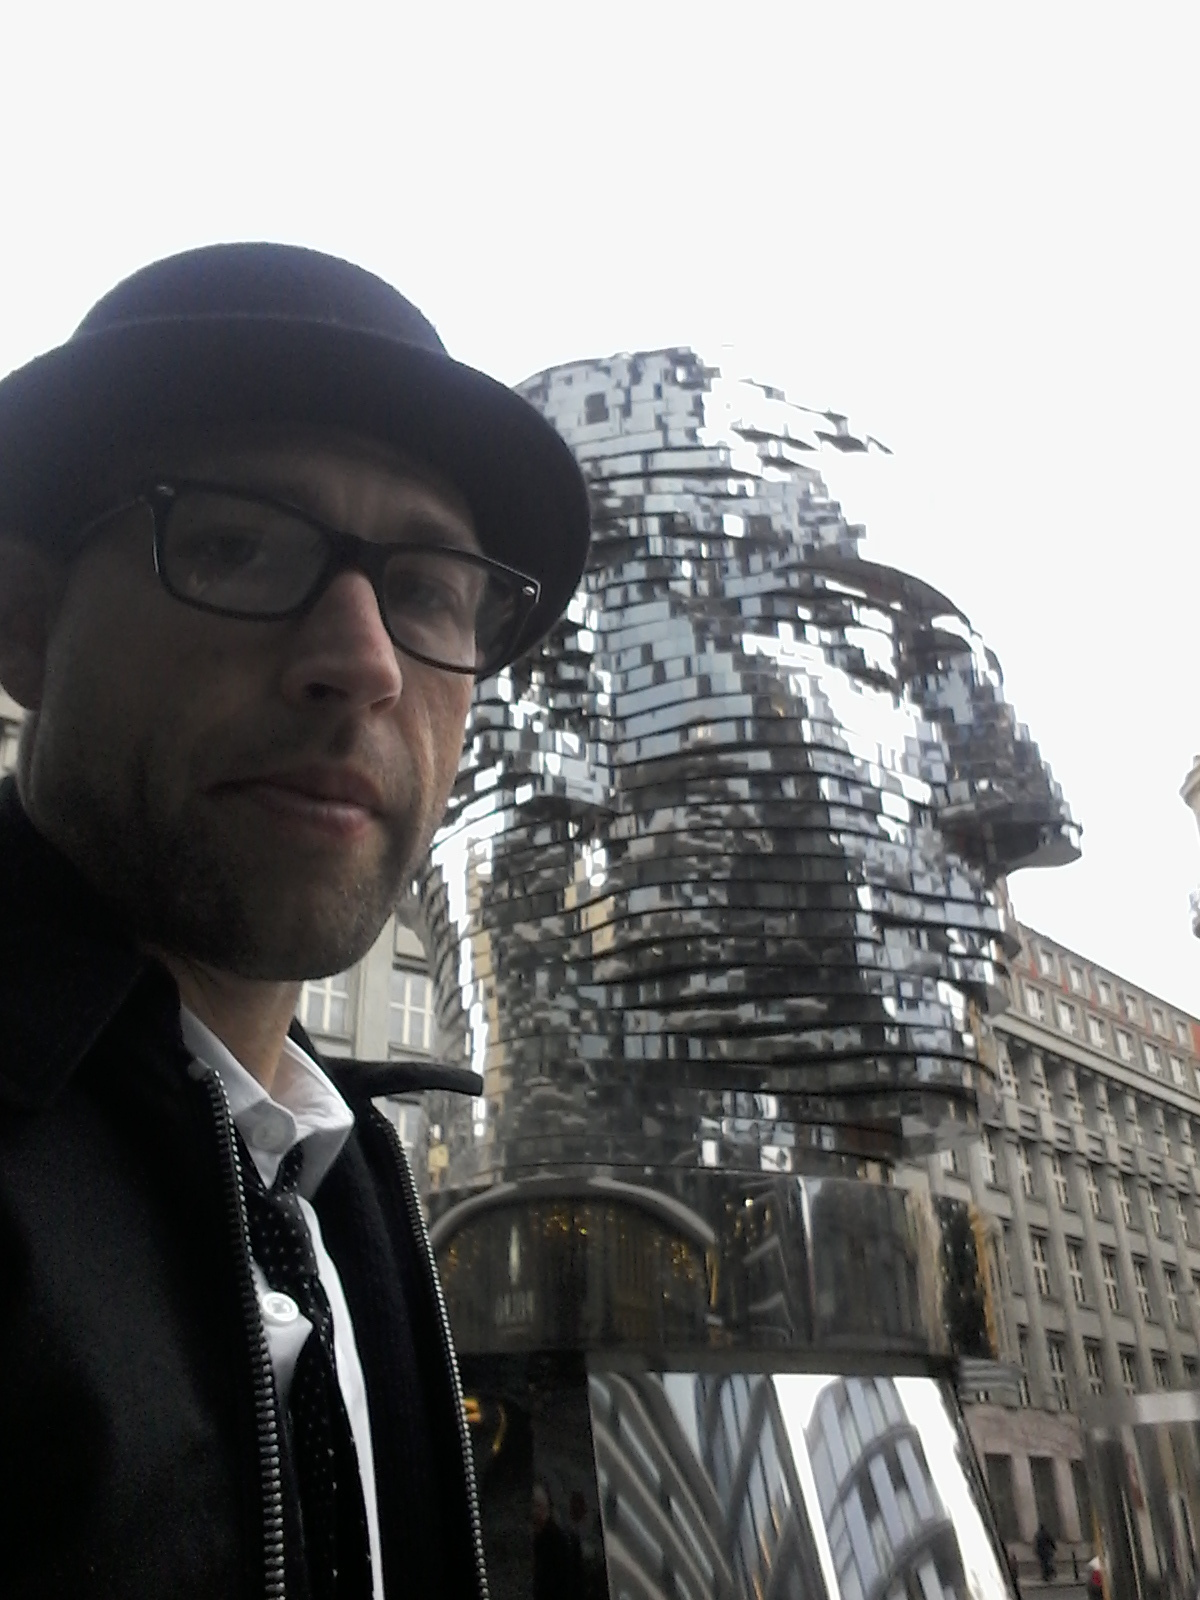 Speaking of old friends, here I am, hanging out with Giant Kafka Head, Central Prague.